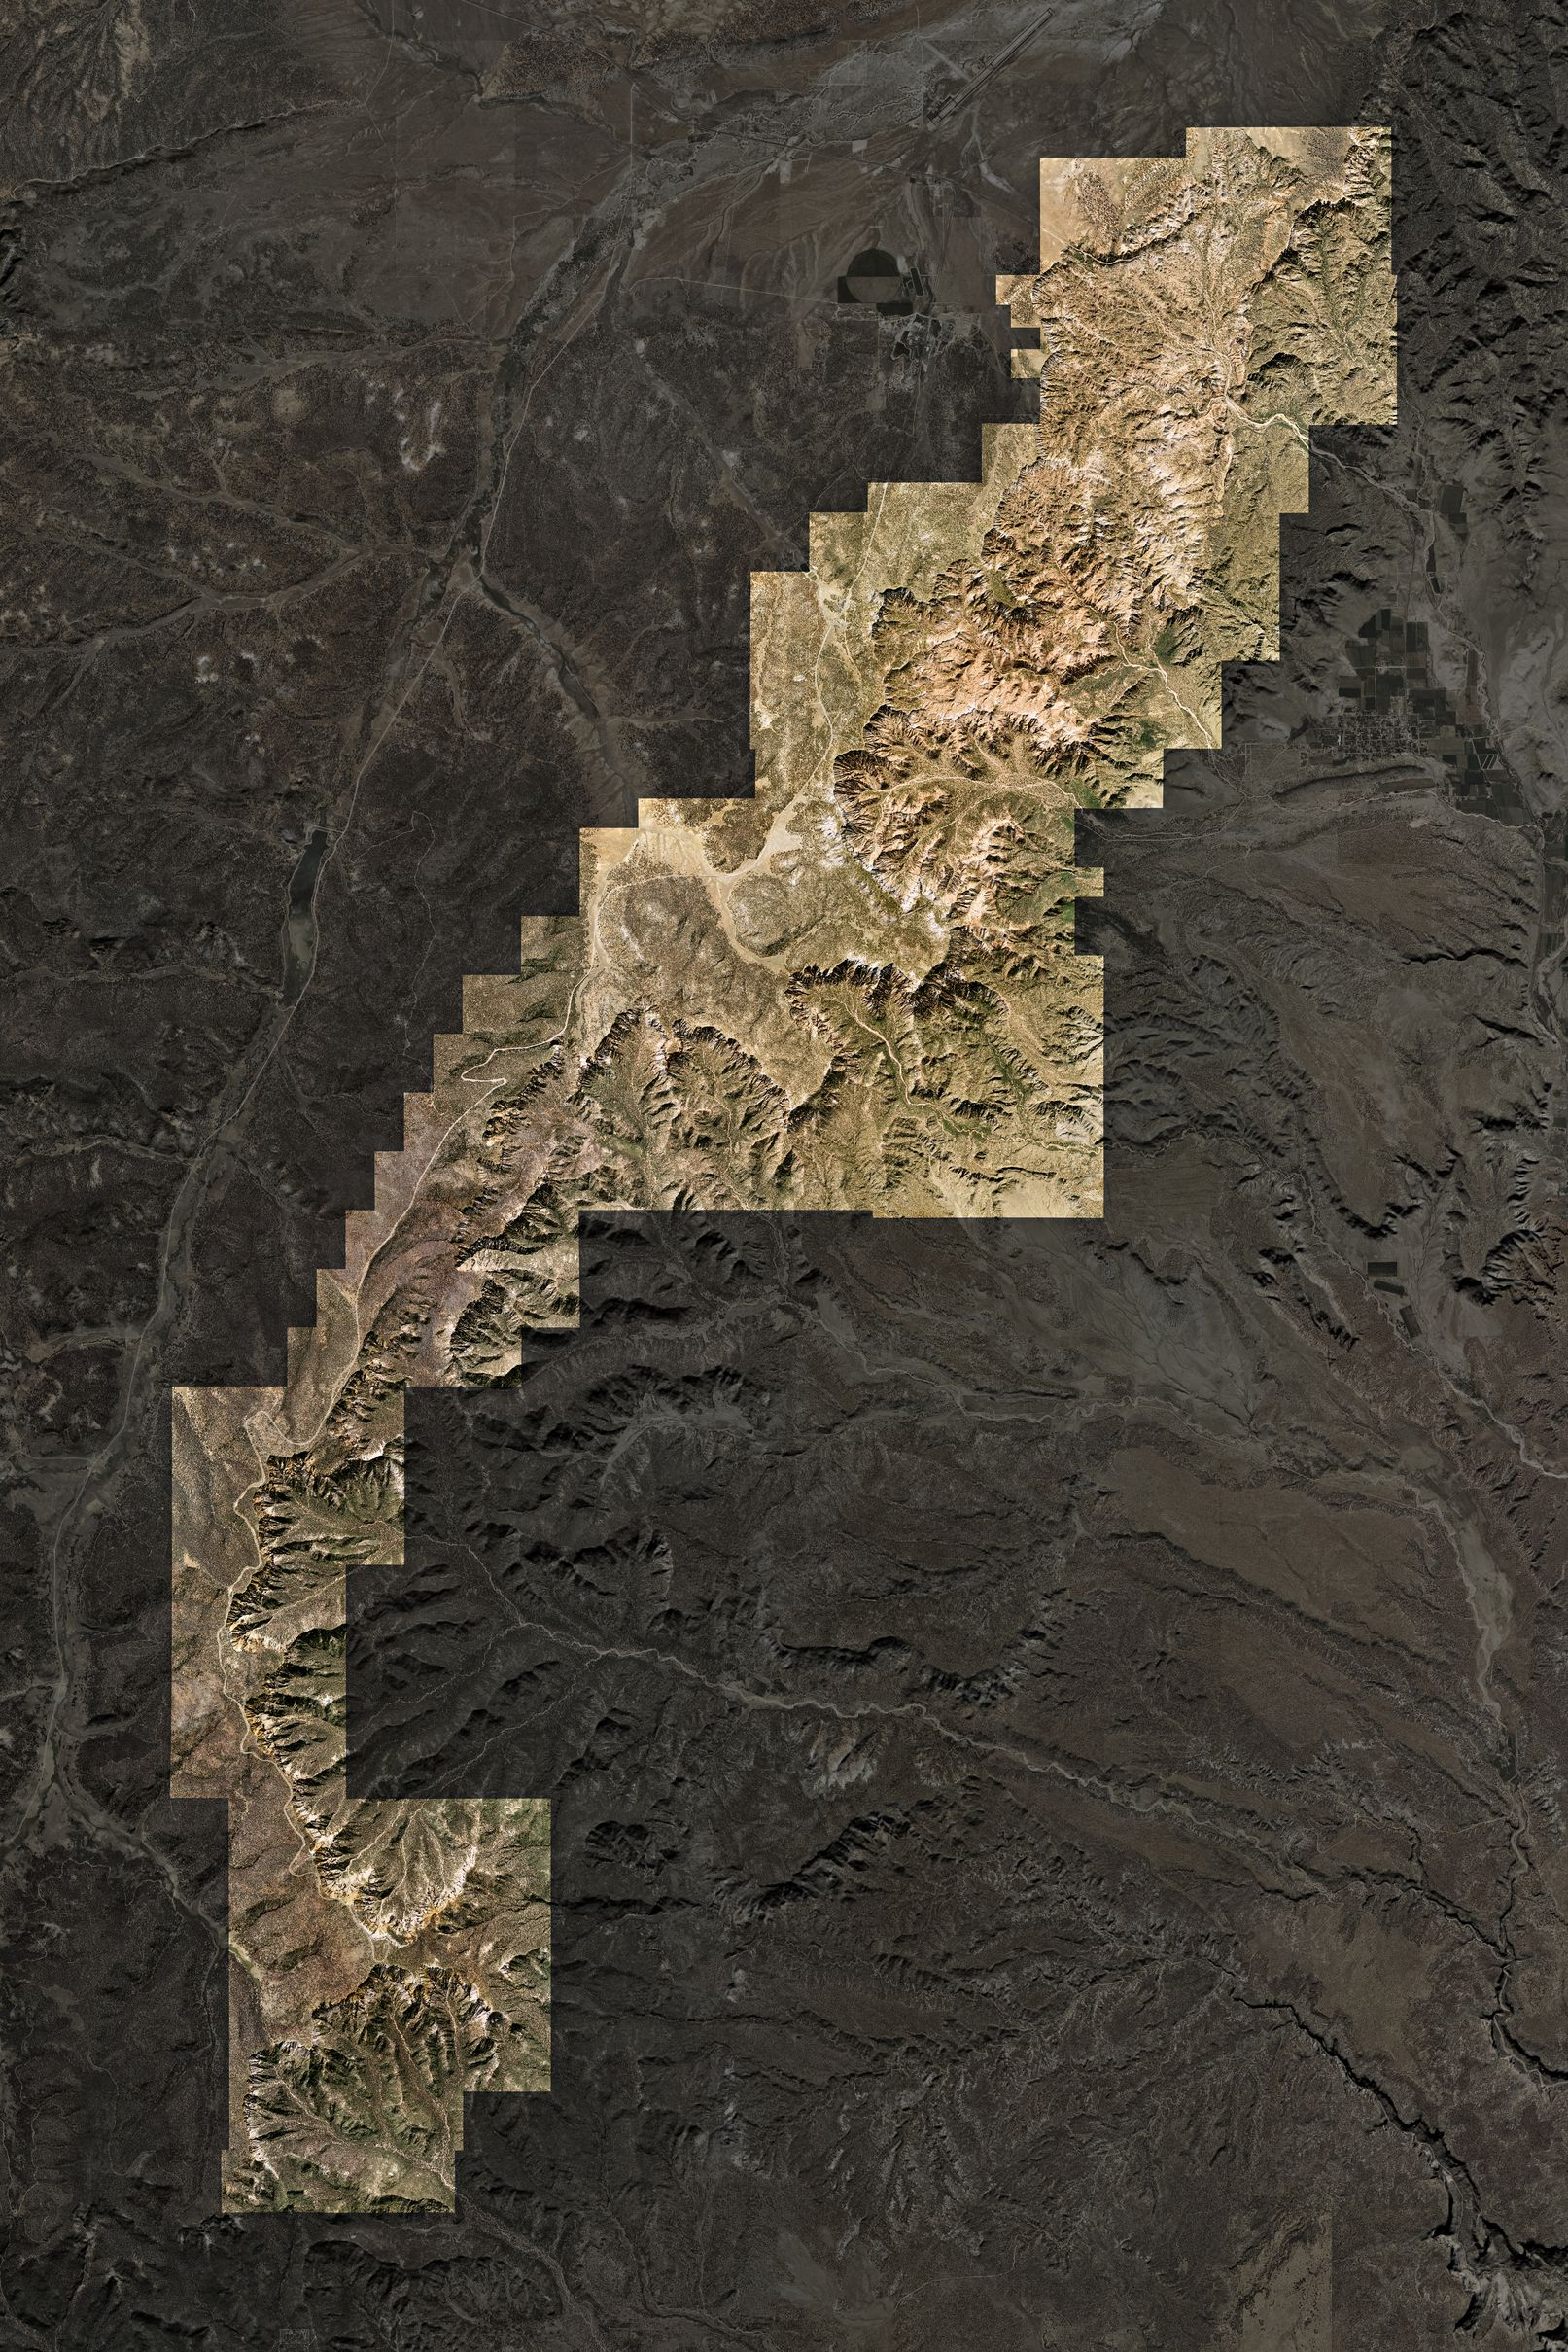 Map of Bryce Canyon National Park